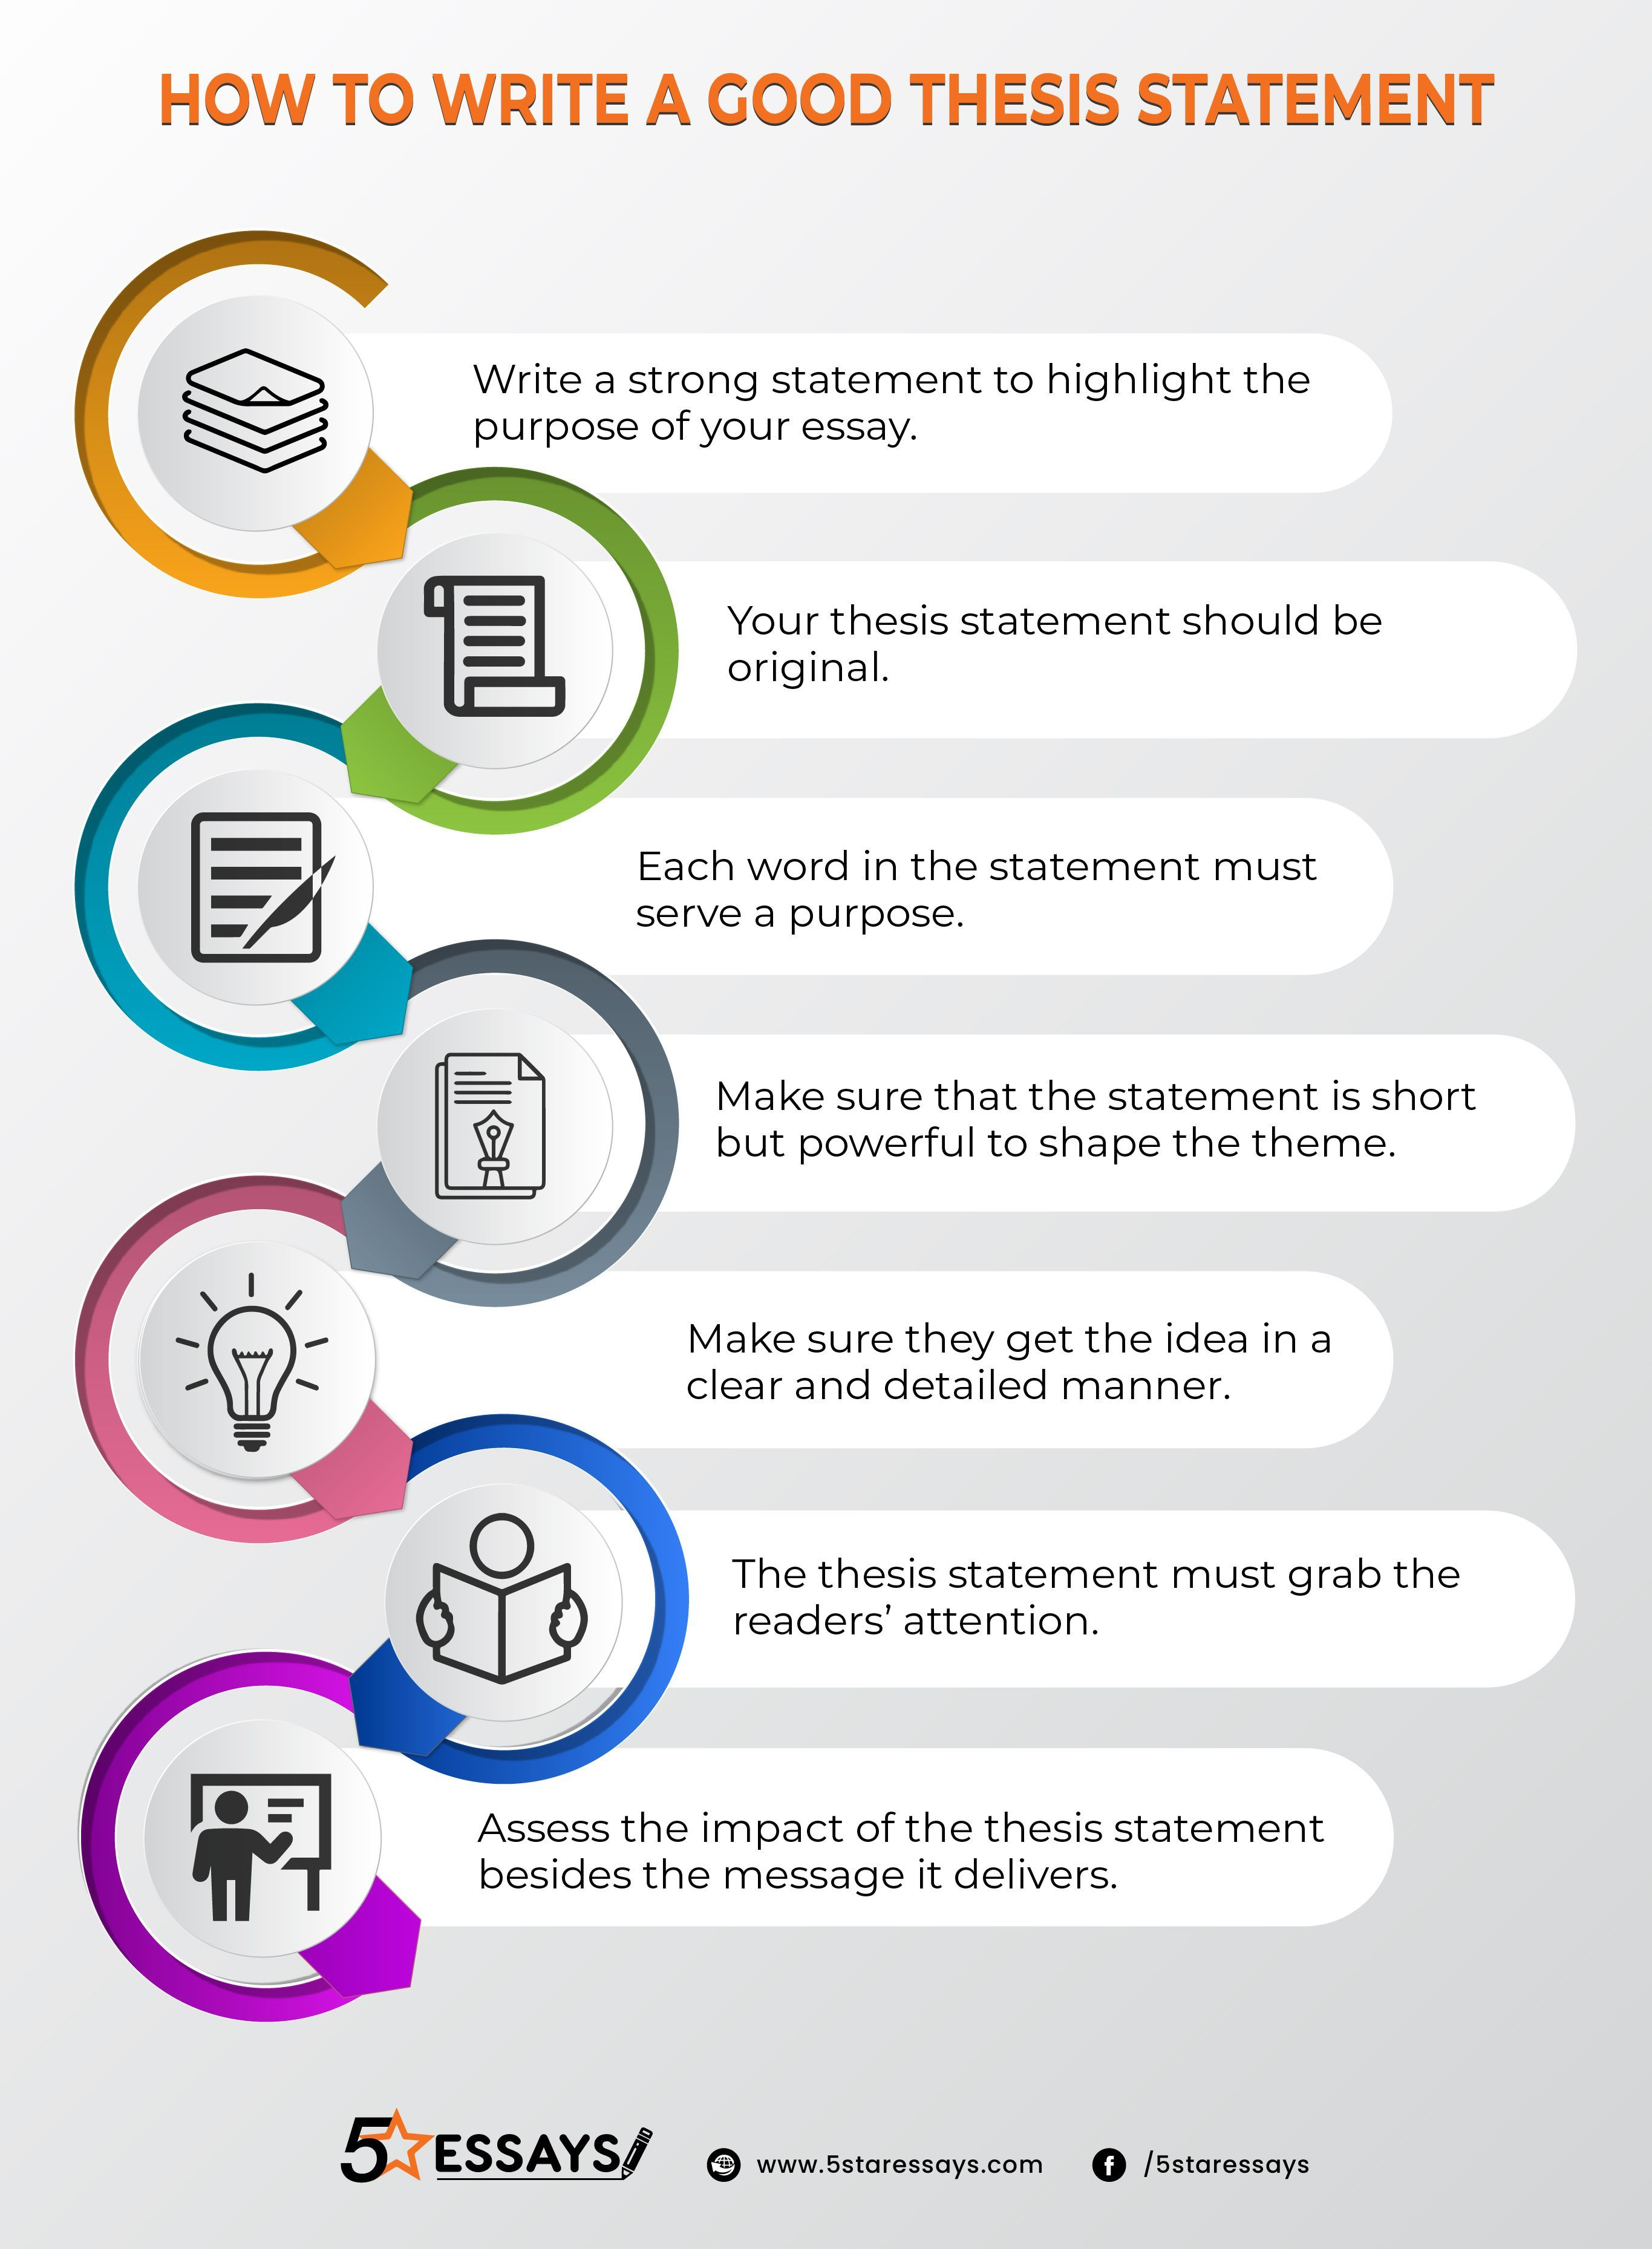 Thesis Statement Writing A Good Thesis Statement Infographic Essay Writing Skills Thesis Statement Academic Writing